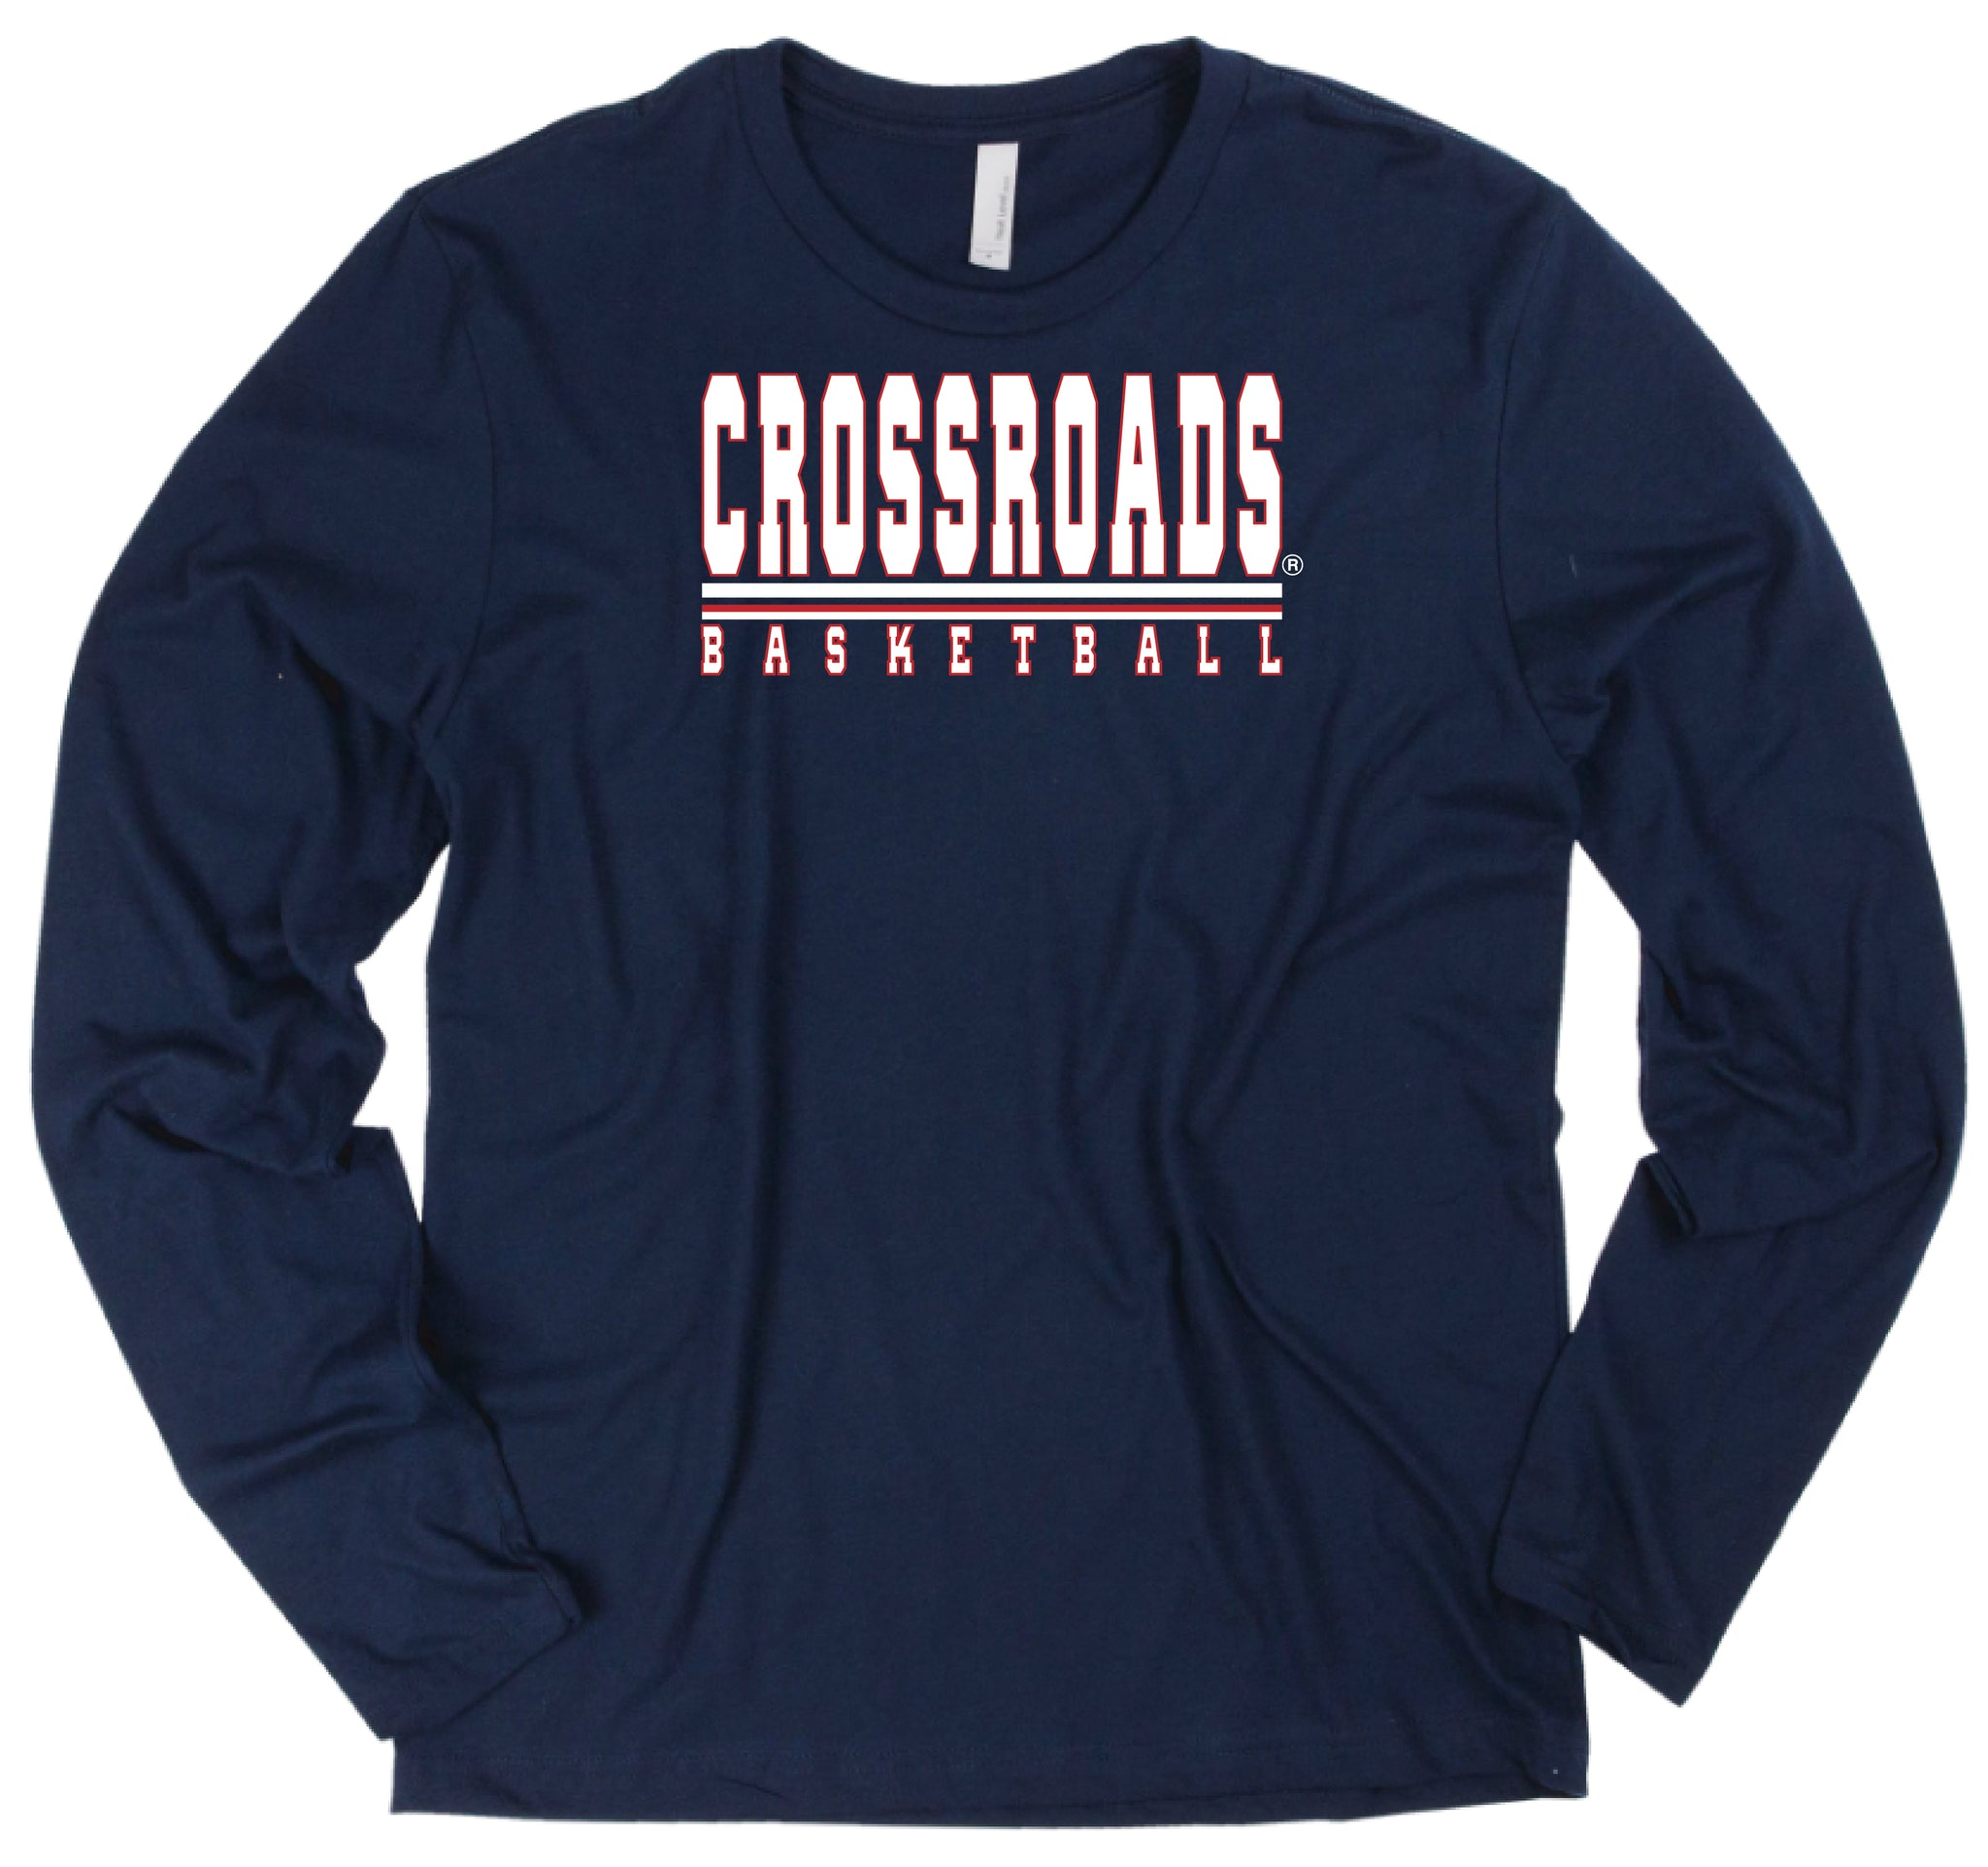 Crossroads Long Sleeve Tee